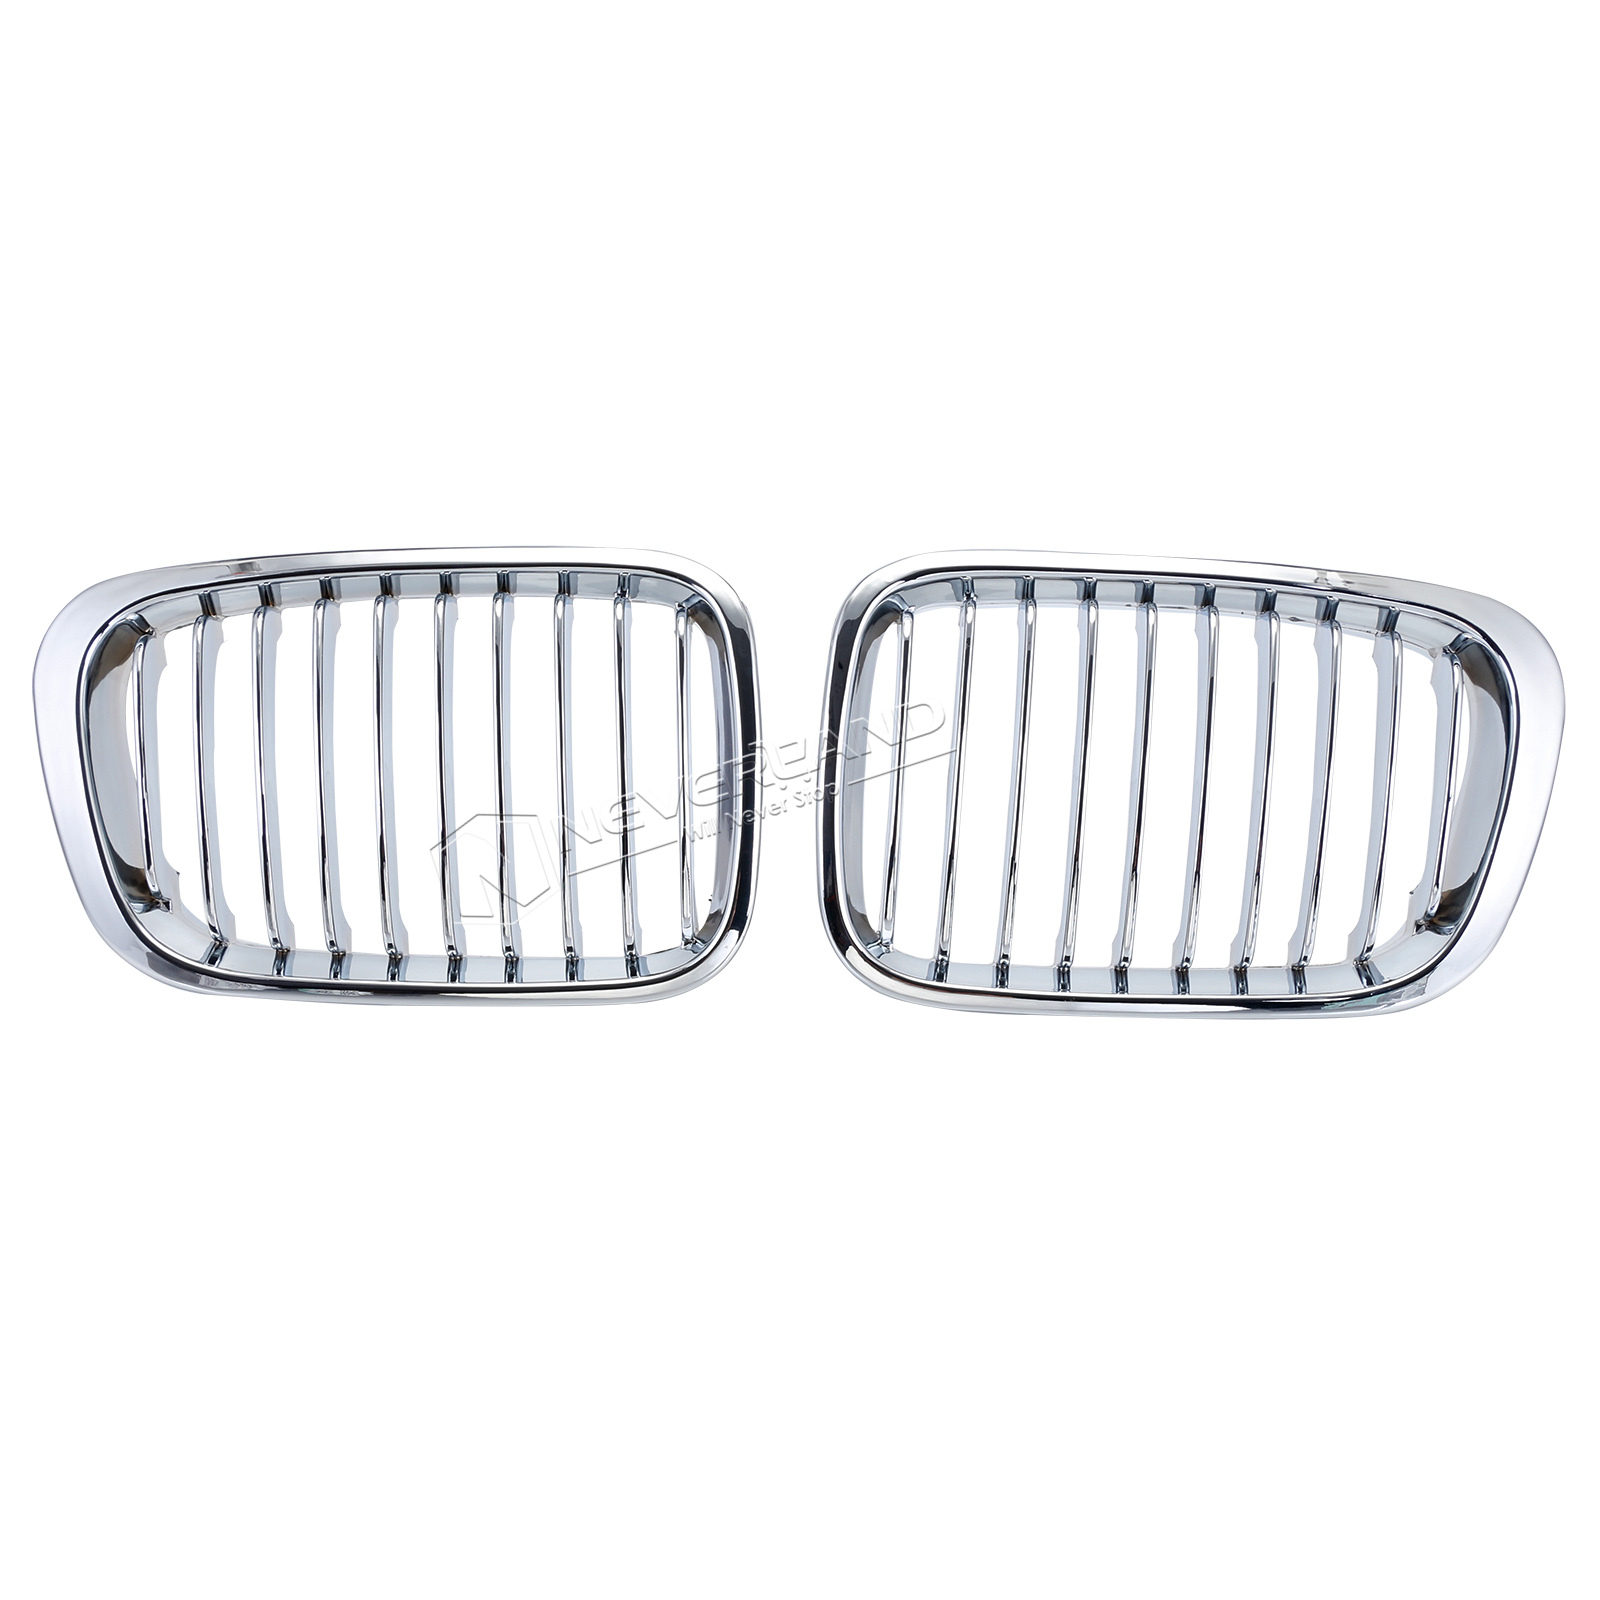 Chrome Front Kidney Grille For Bmw E46 3 Series 4 Door